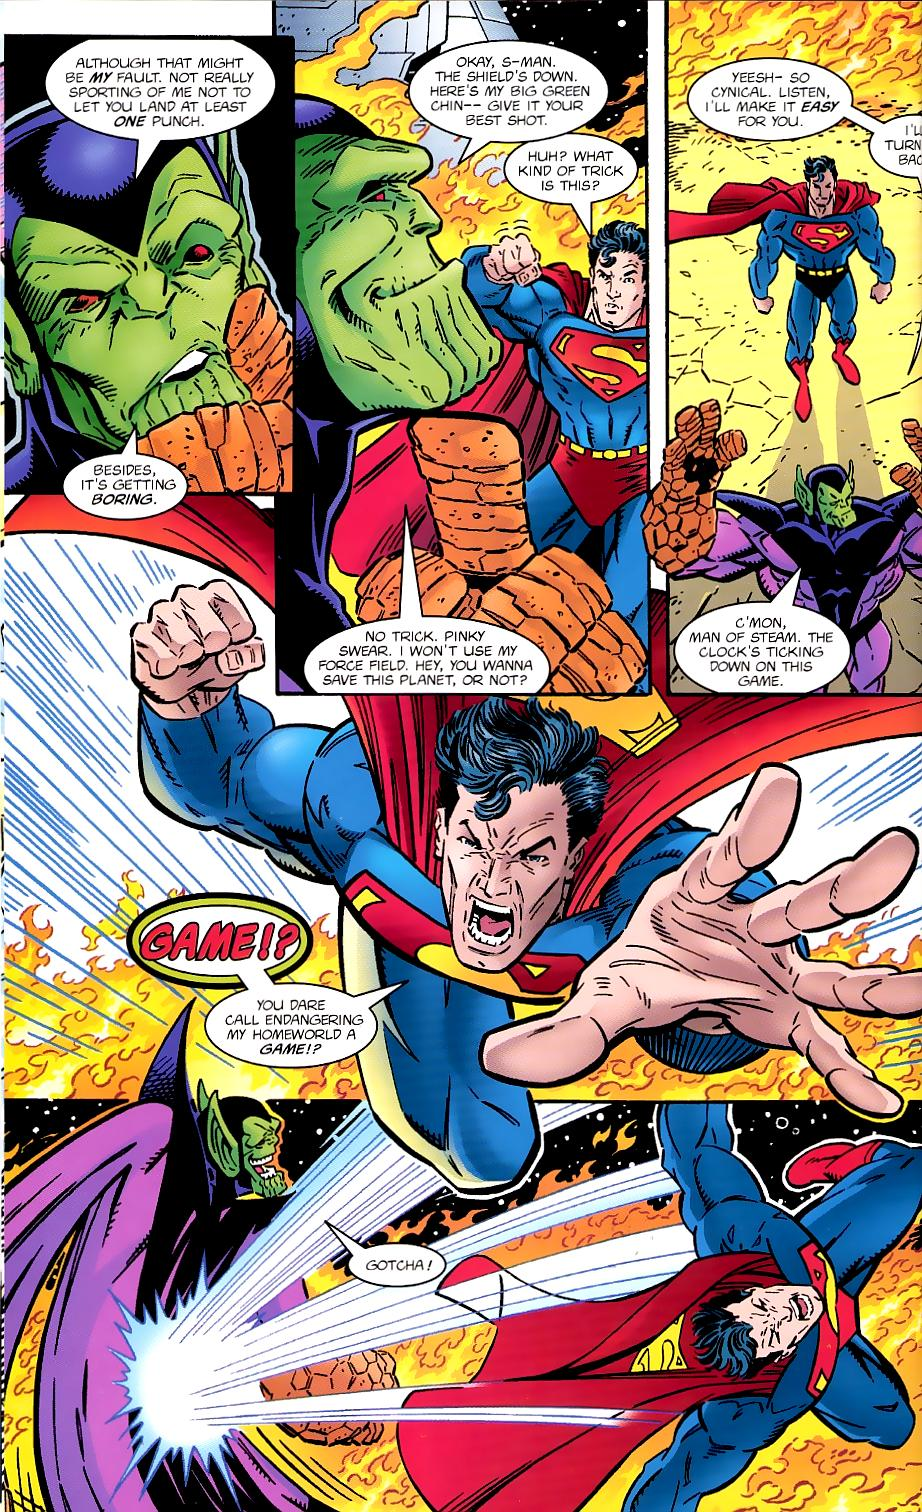 Read online Silver Surfer/Superman comic -  Issue # Full - 20